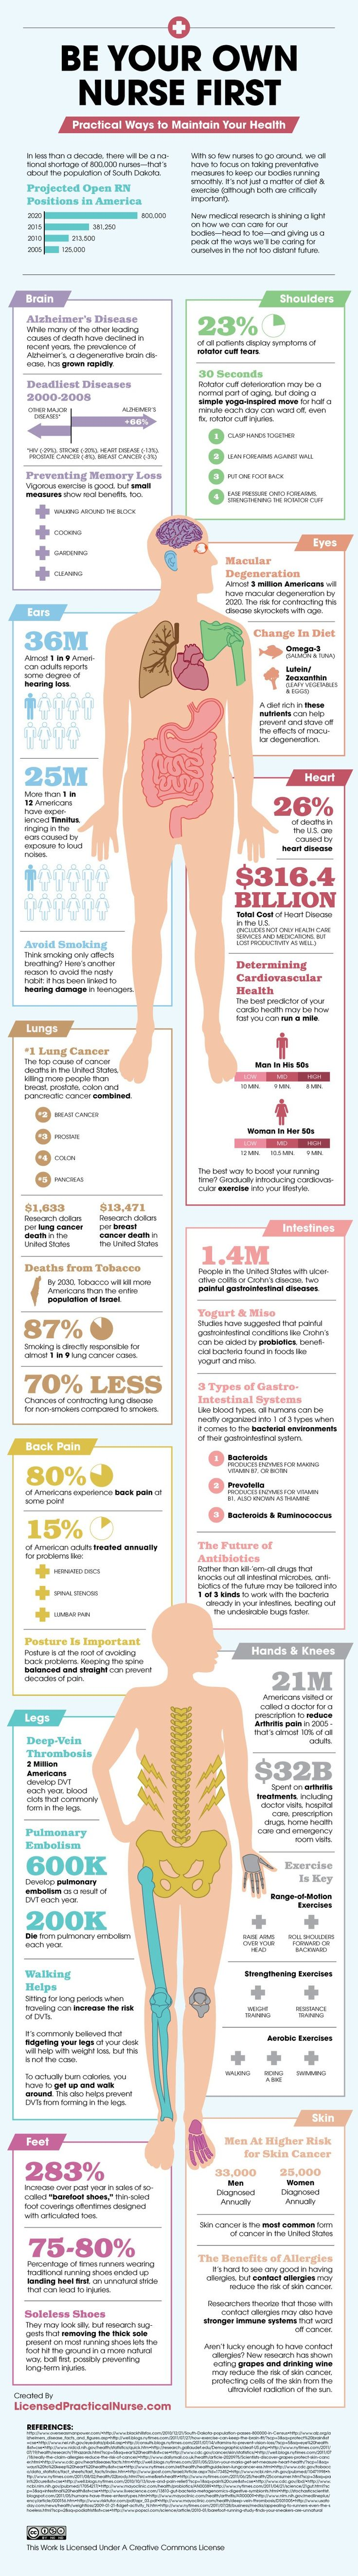 Your Nurse First - Maintaining Your Health (Infographic) by joeLL C. Lapitan